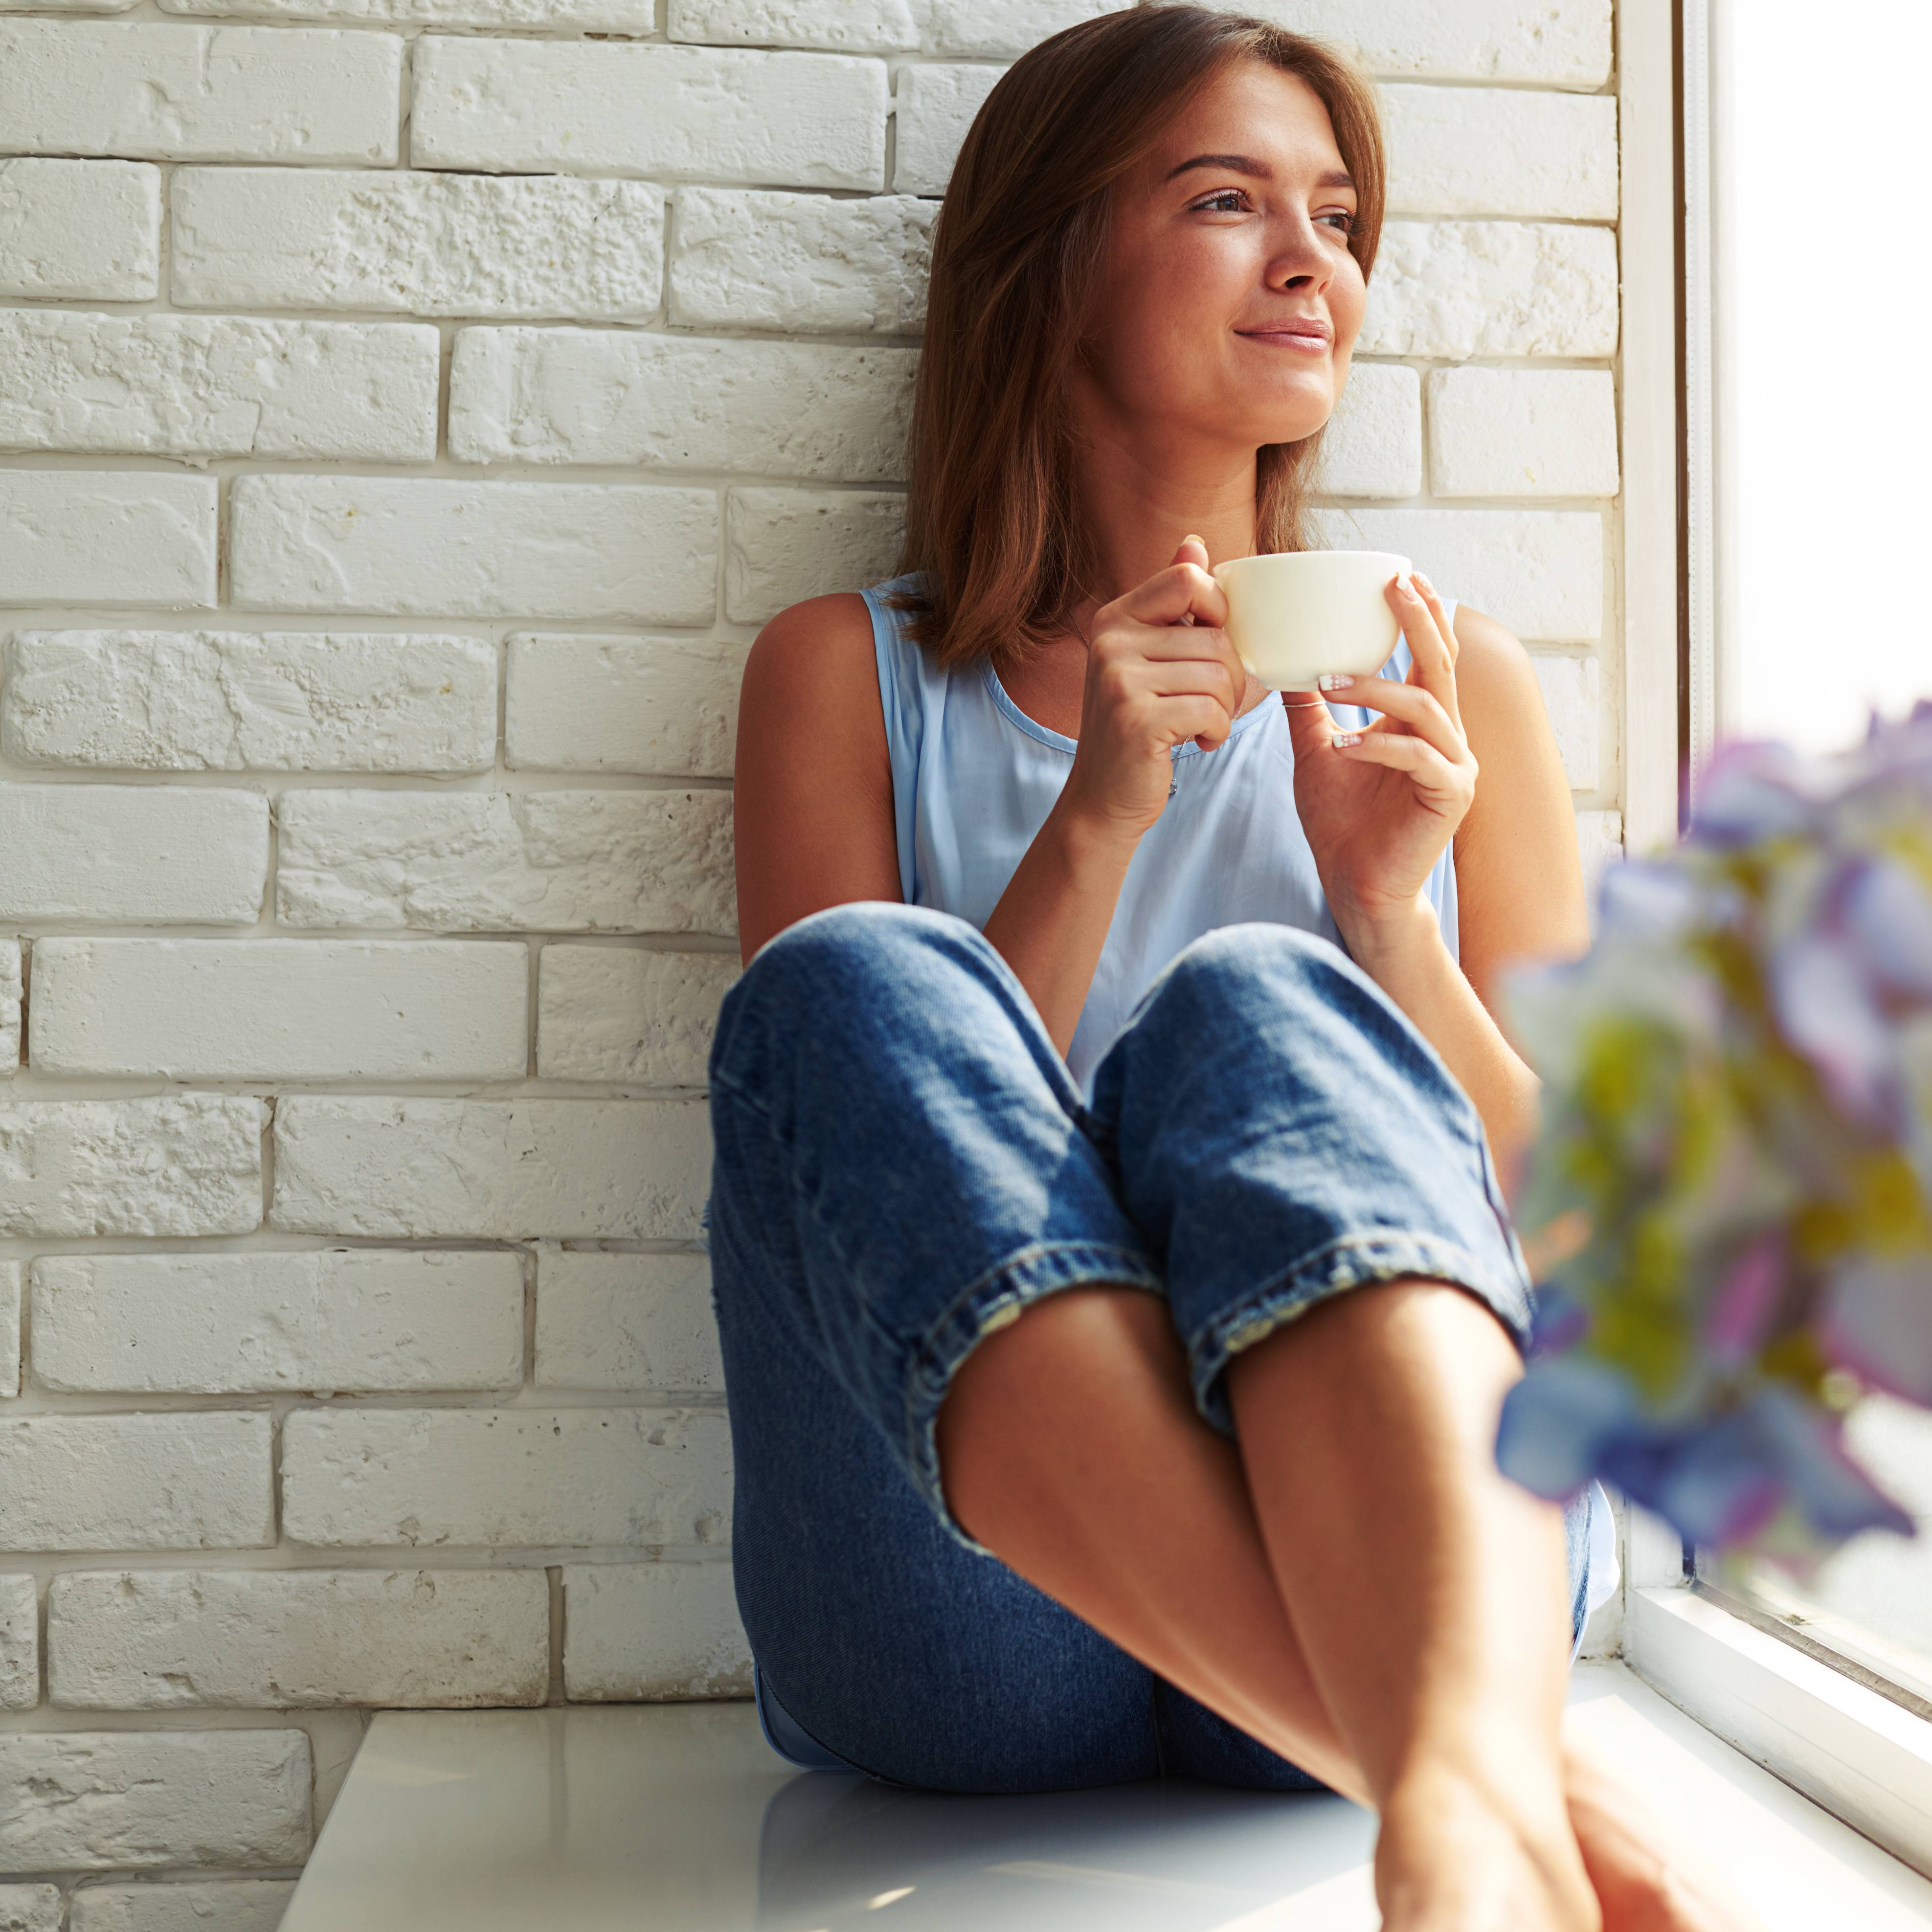 a smiling young woman, sitting in a sunny windowsill, sipping coffee and looking outside